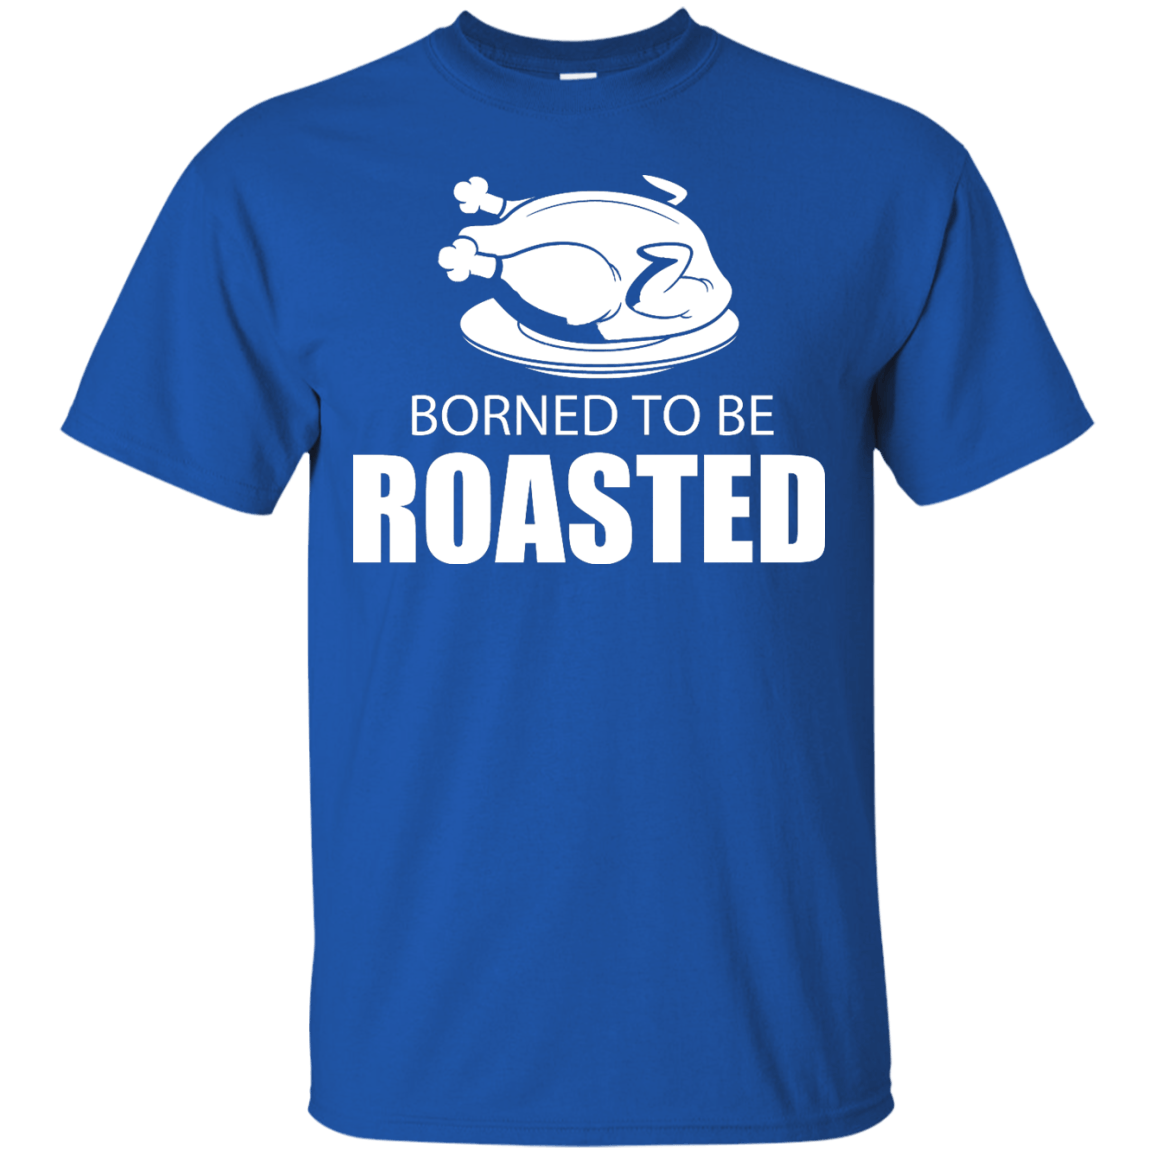 Borned To Be Roasted themed T-Shirts and Hoodies for Men and Women